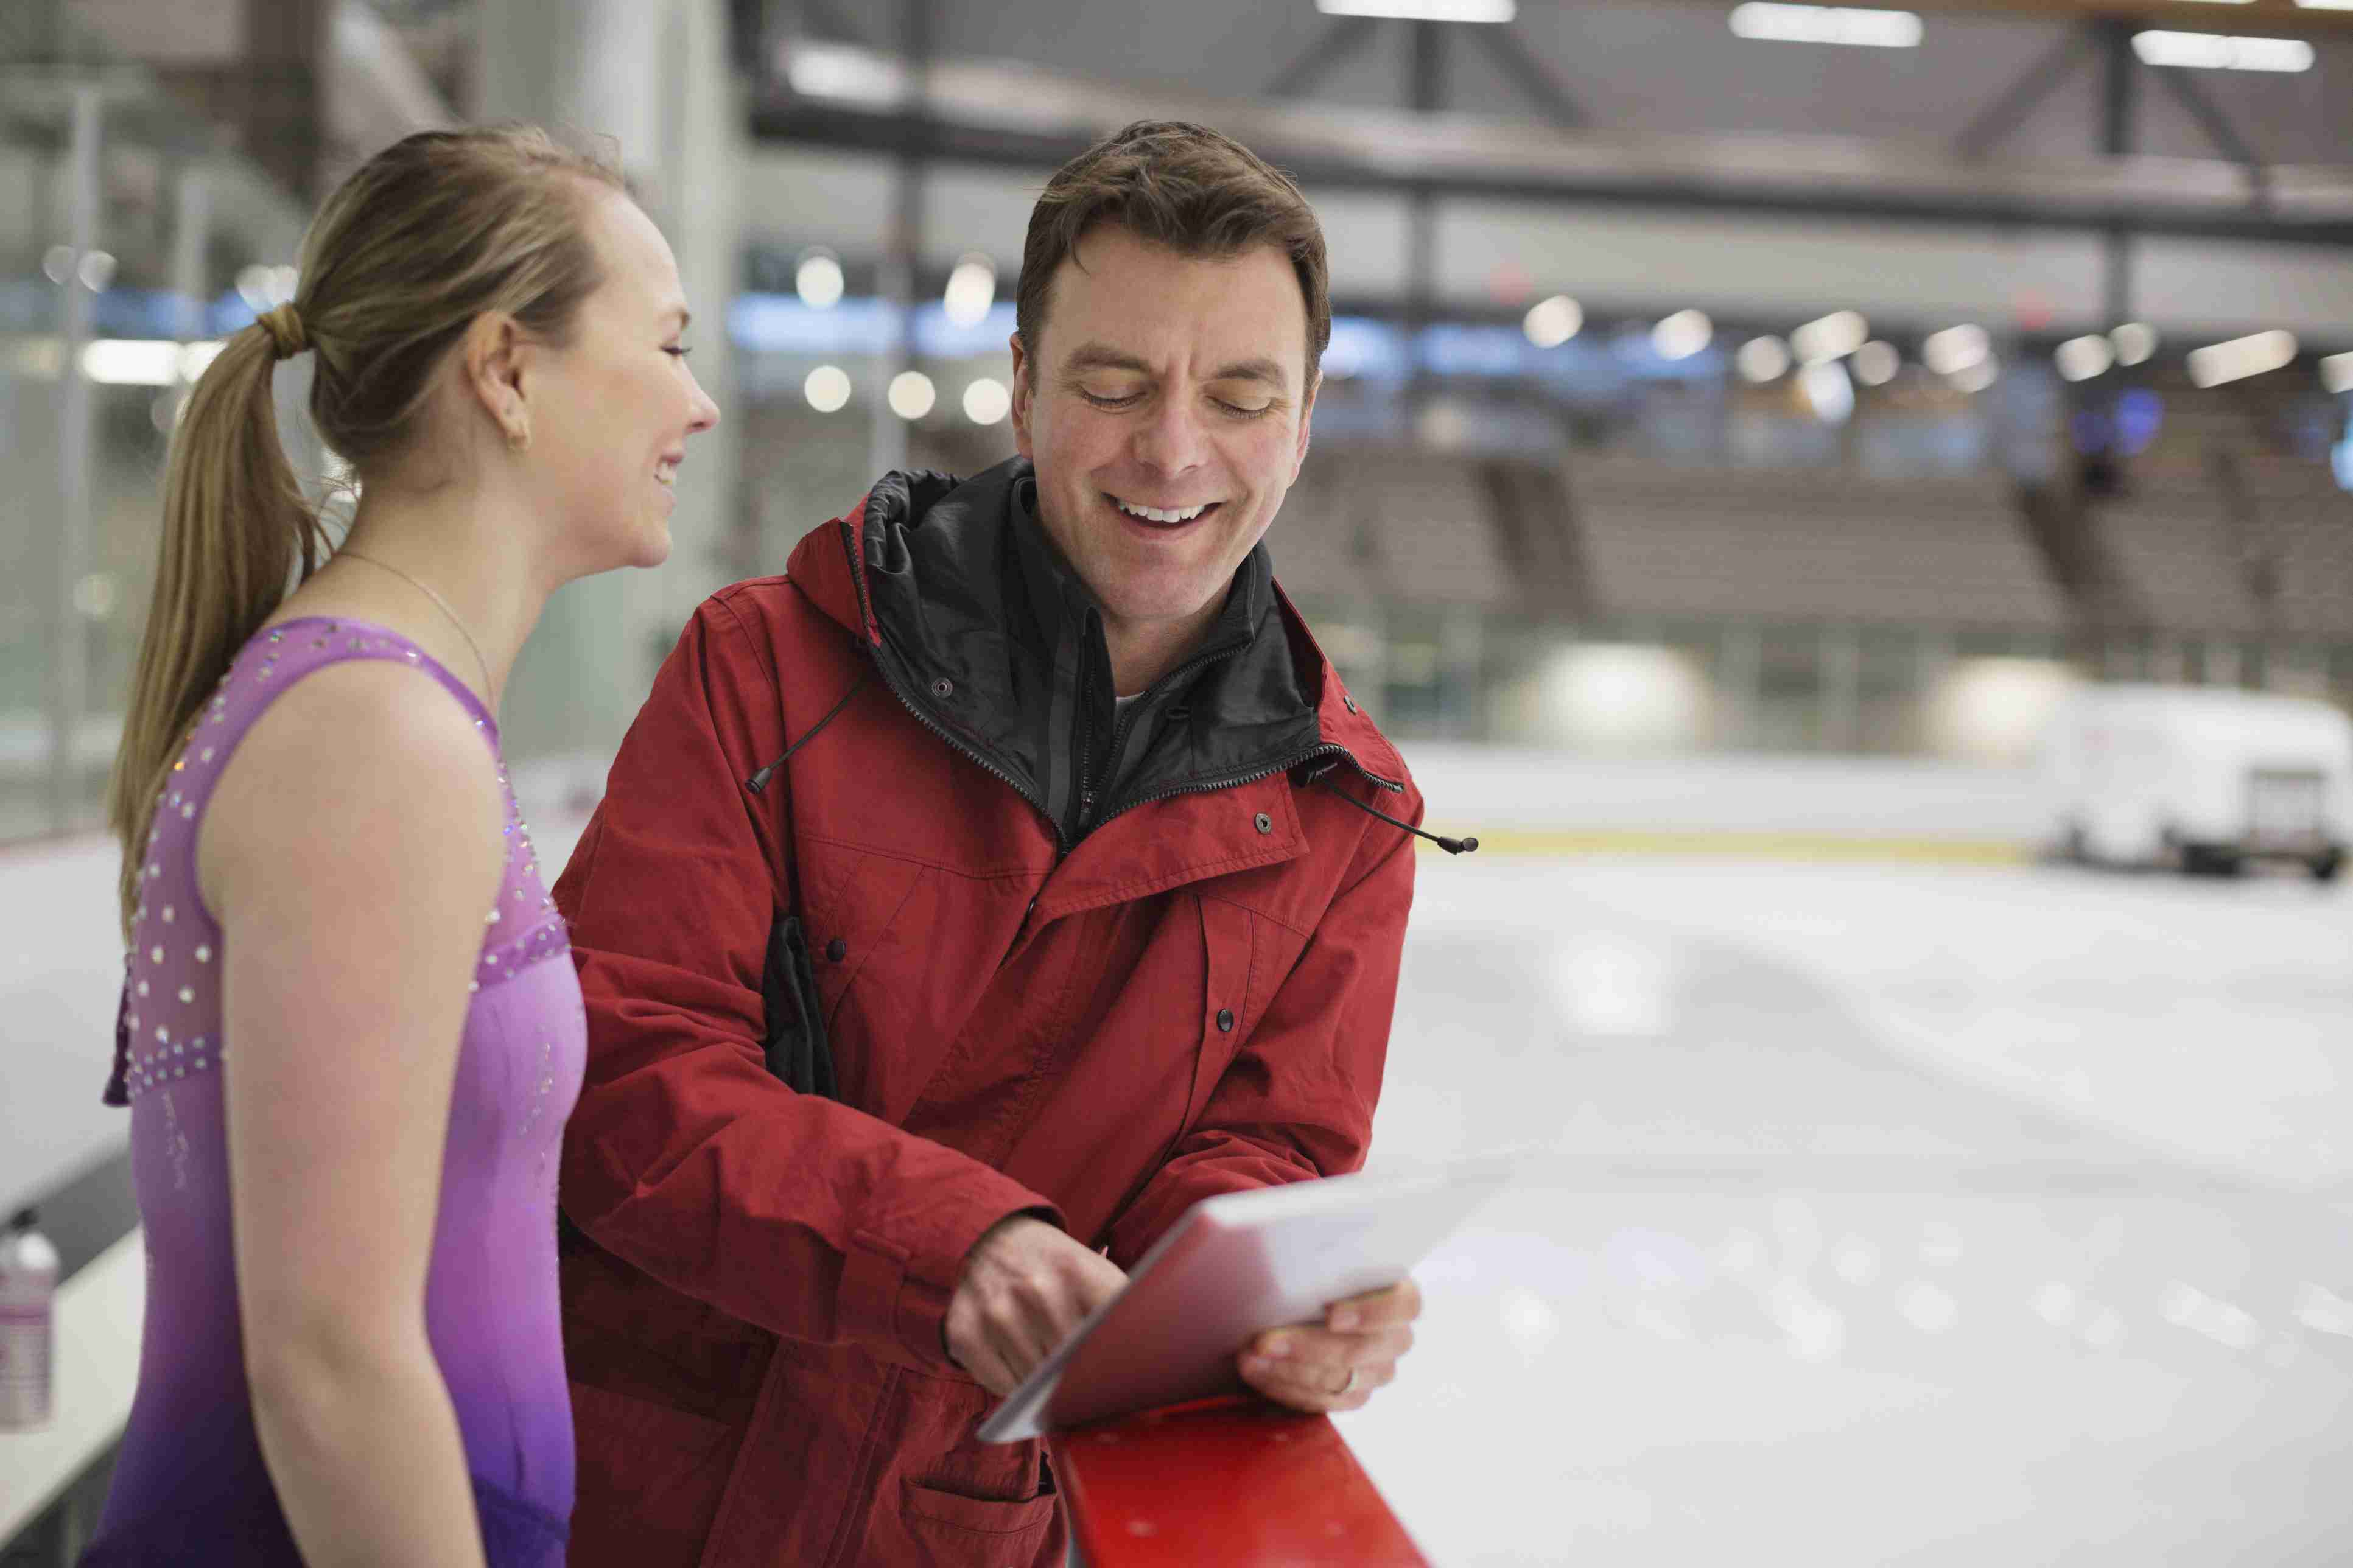 Female figure skater with coach discussing routine in skating rink